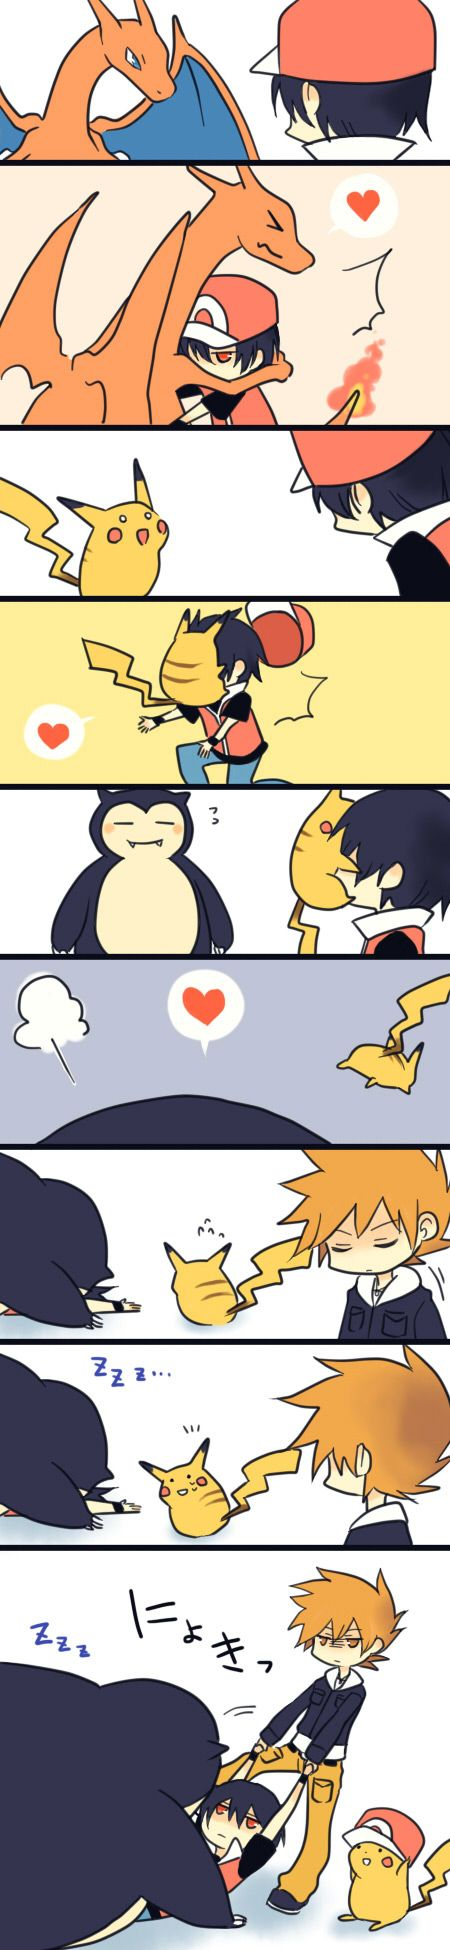 this is probably the cutest Pokemon comic thing i have seen.030